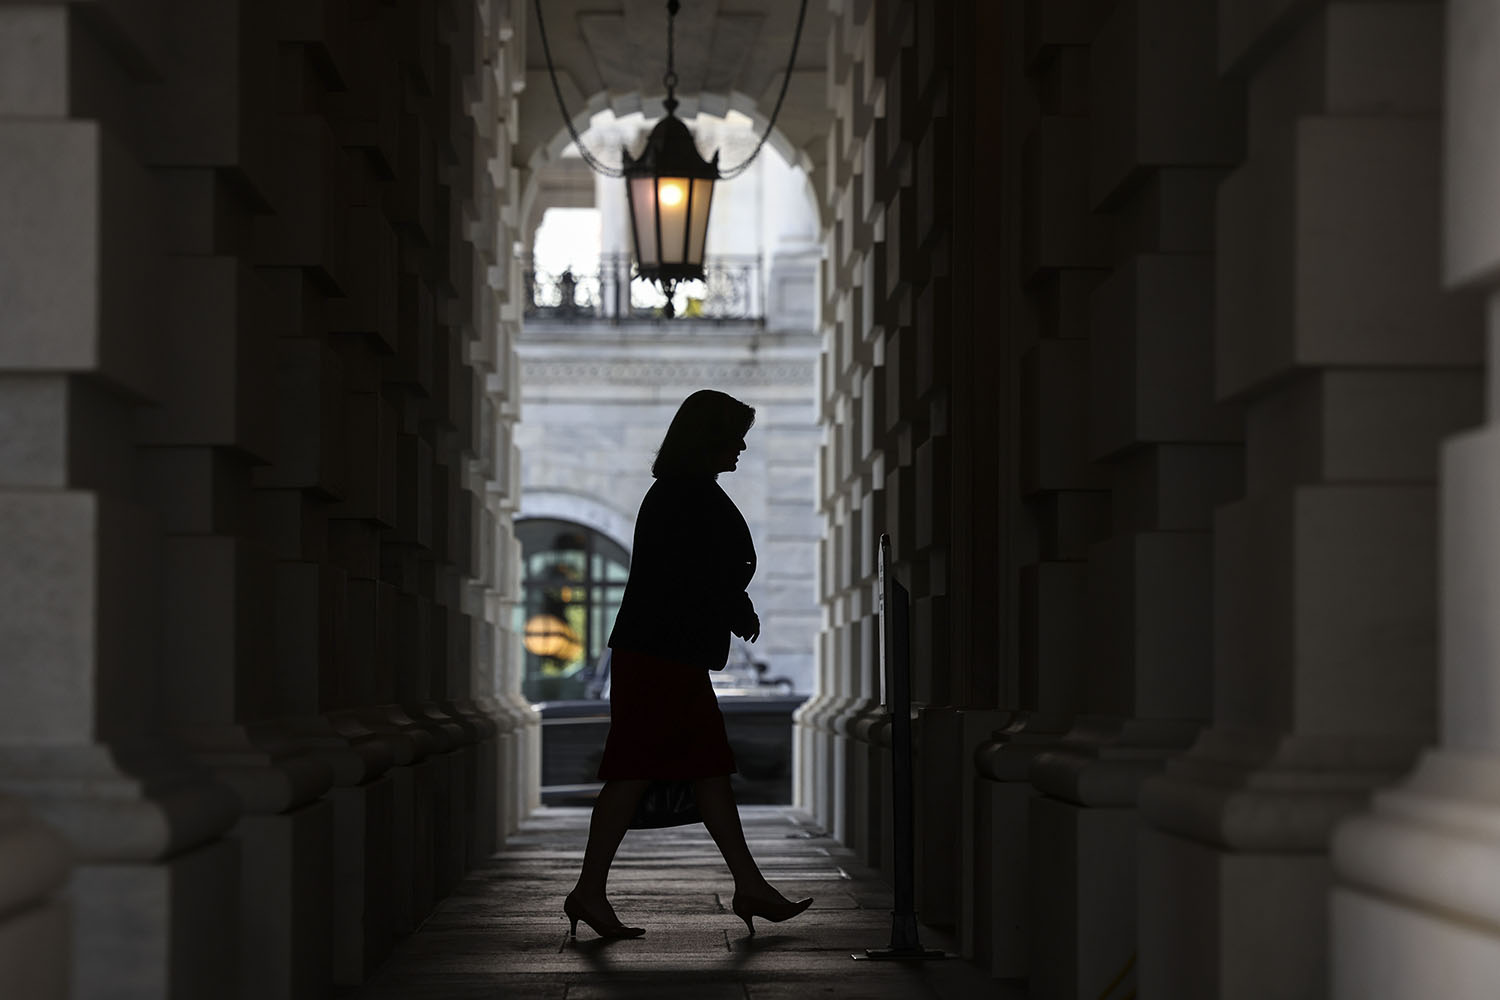 U.S. Sen. Joni Ernst (R-Iowa) arrives at the U.S. Capitol in Washington on Sept. 27. Kevin Dietsch/Getty Images